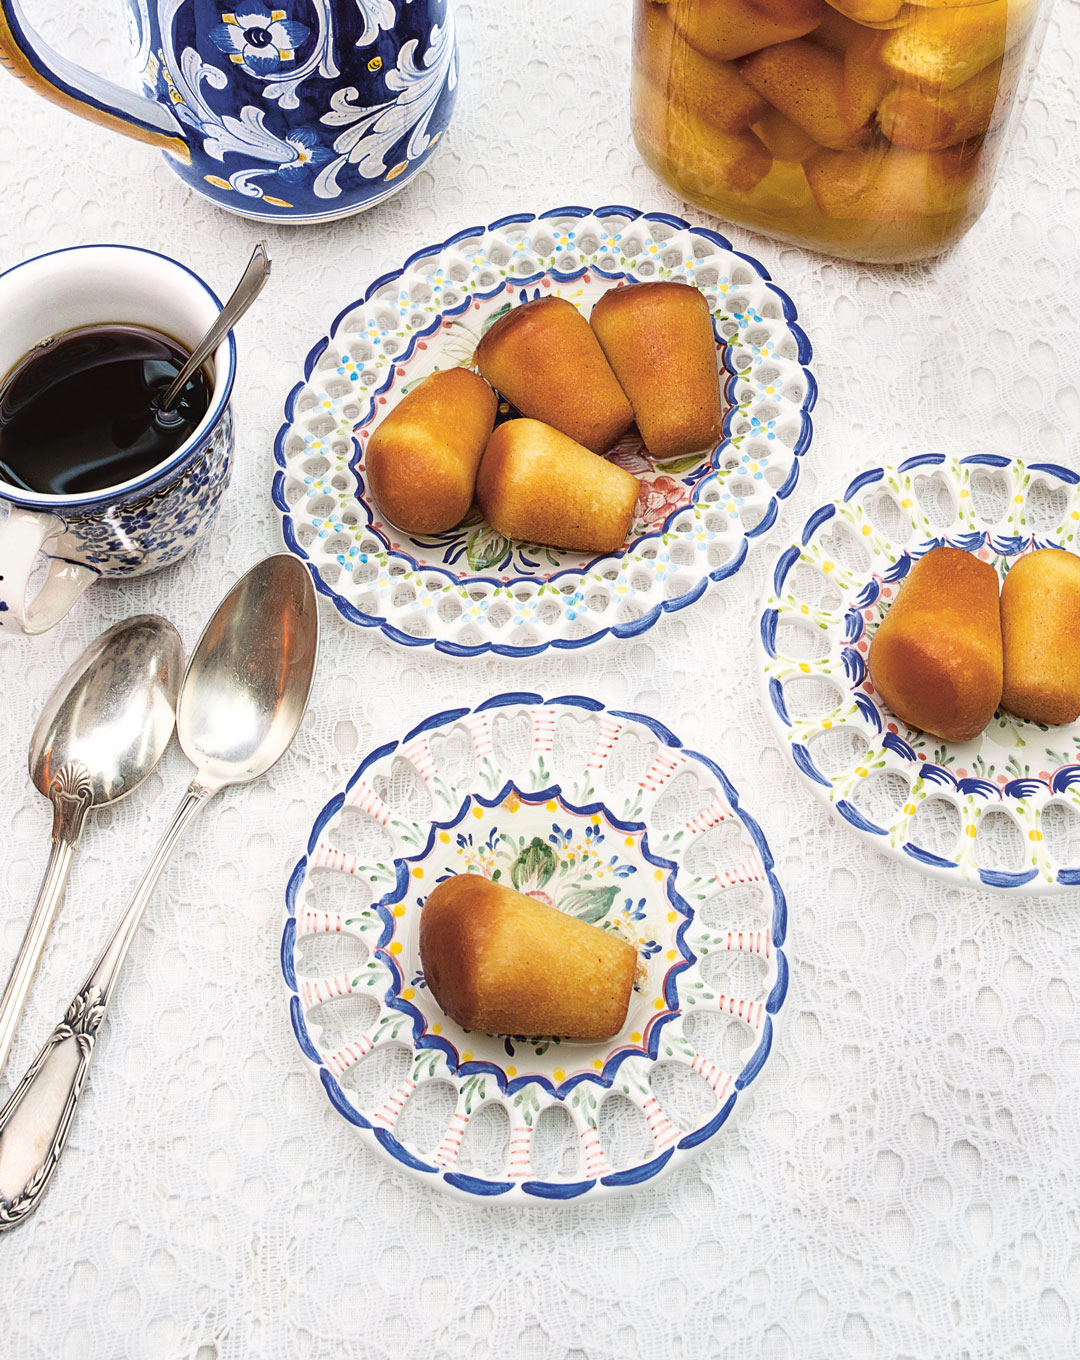 Eat Me Baba One More Time (Rum baba)